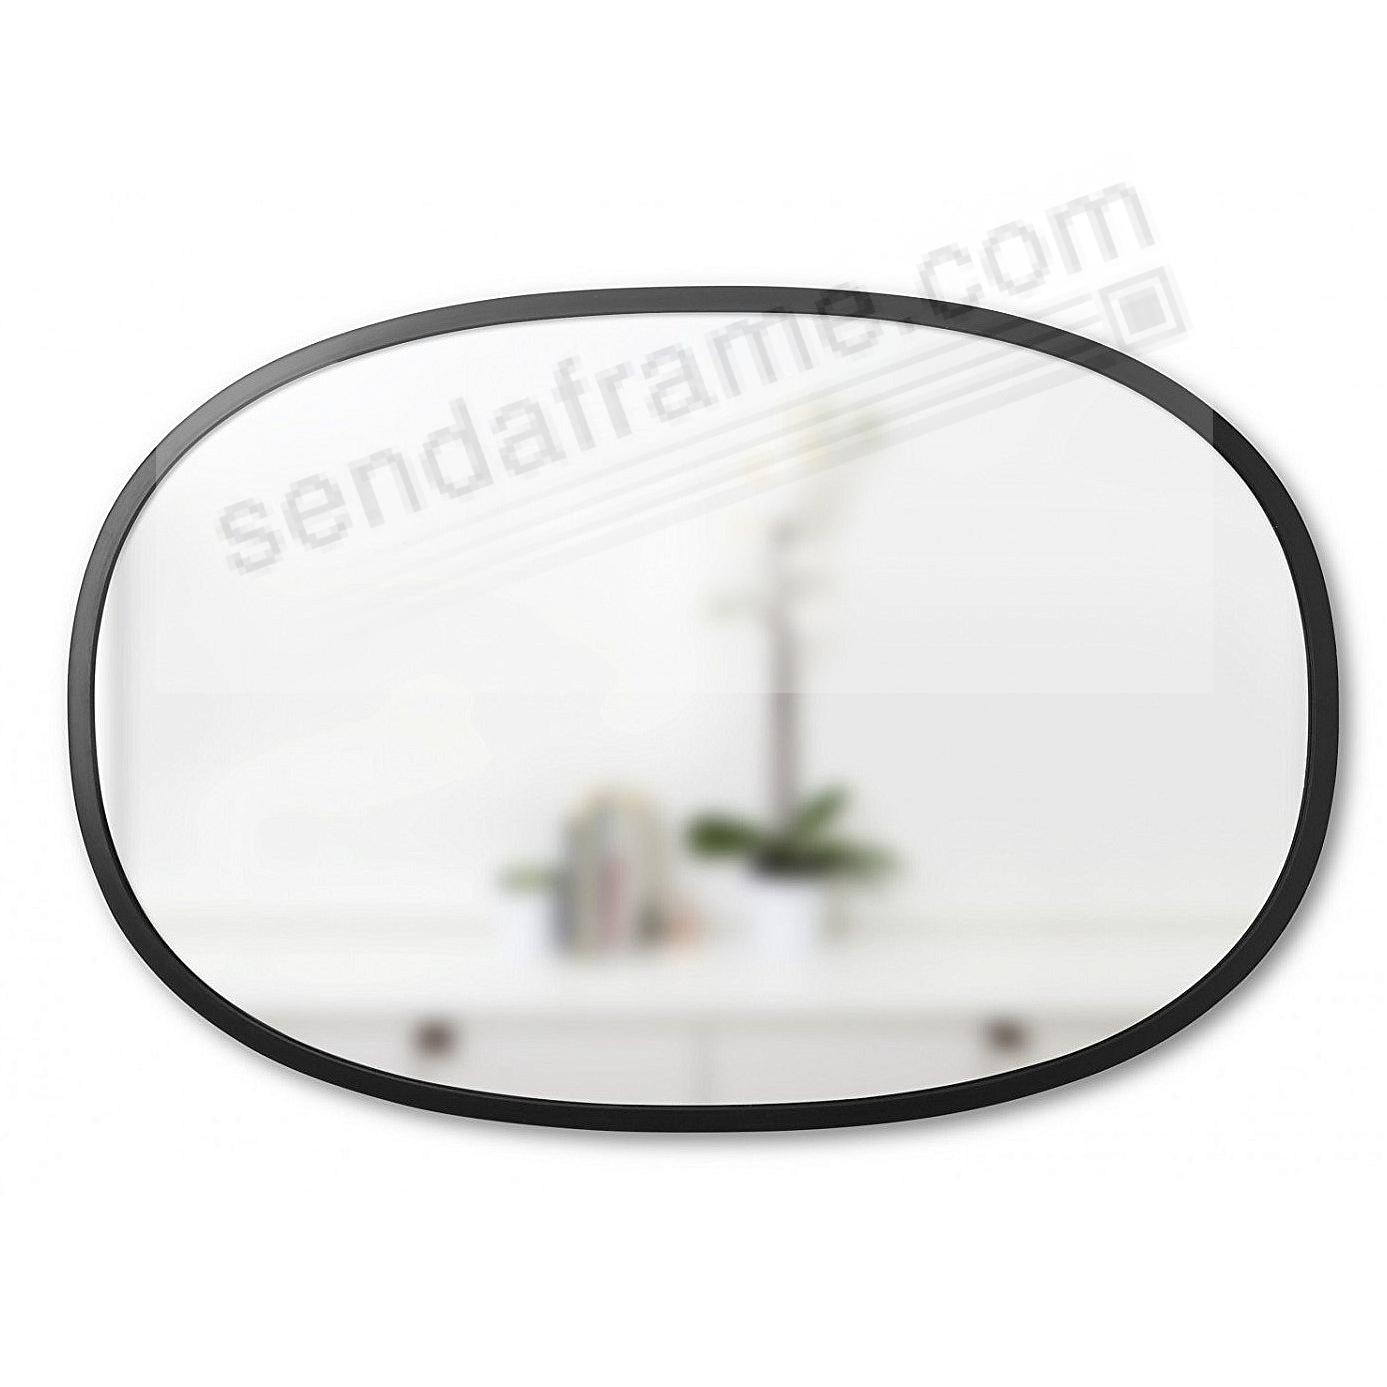 The HUB WALL MIRROR 36x24inch OVAL Black by Umbra®